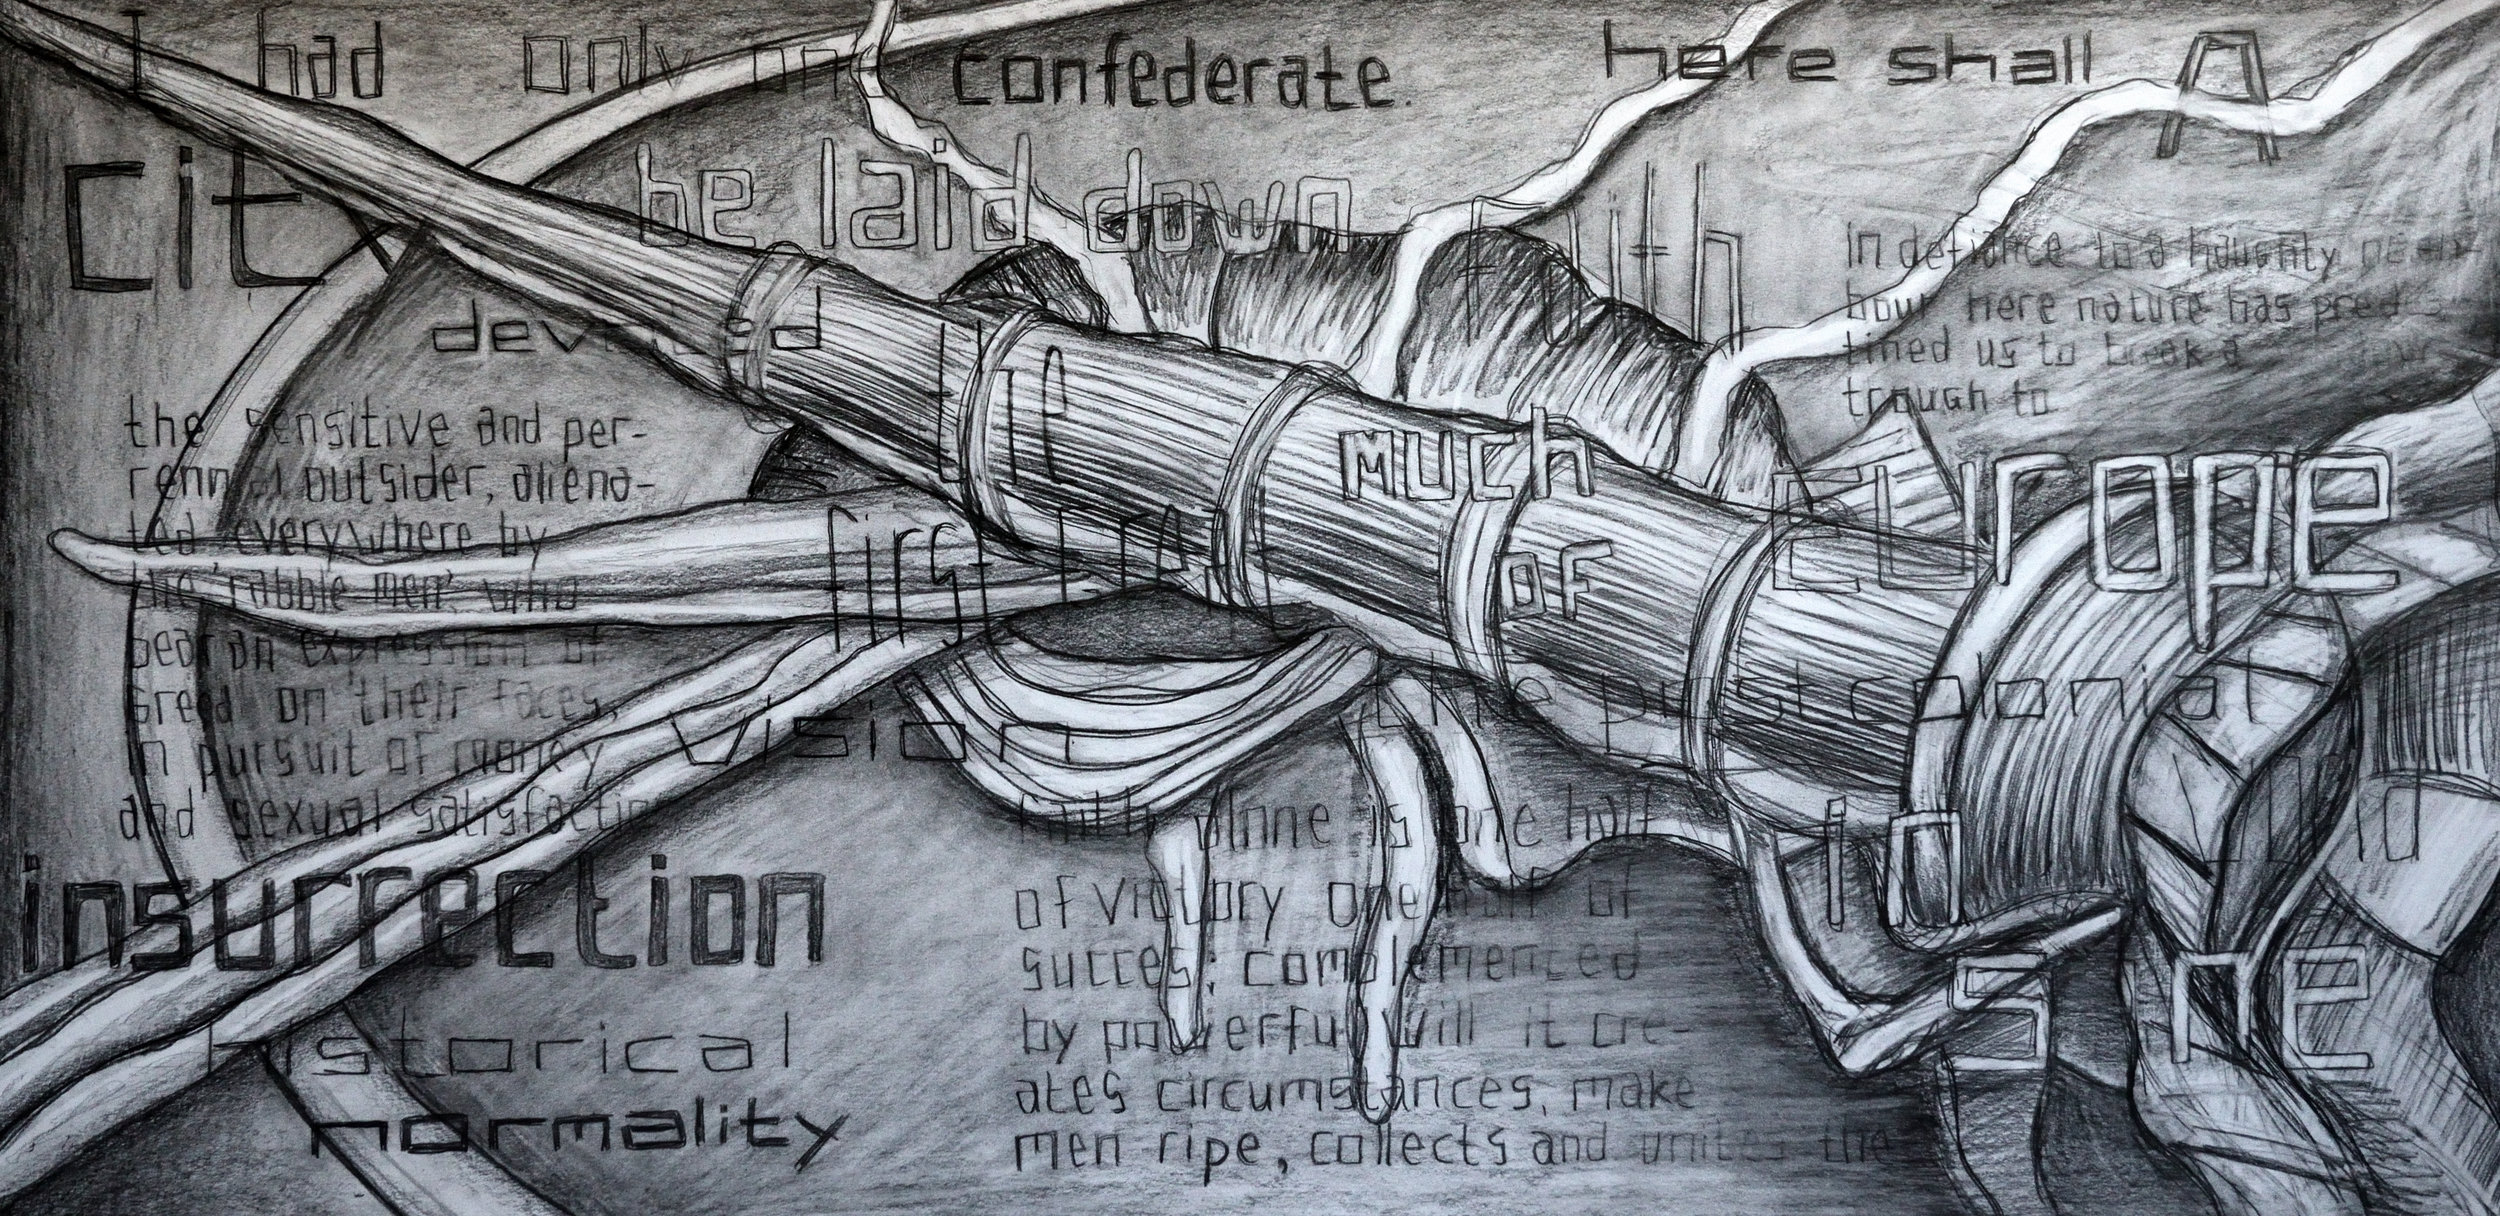 Here Shall a Devoted Vision be Laid Down, pencil on paper, 70x140cm